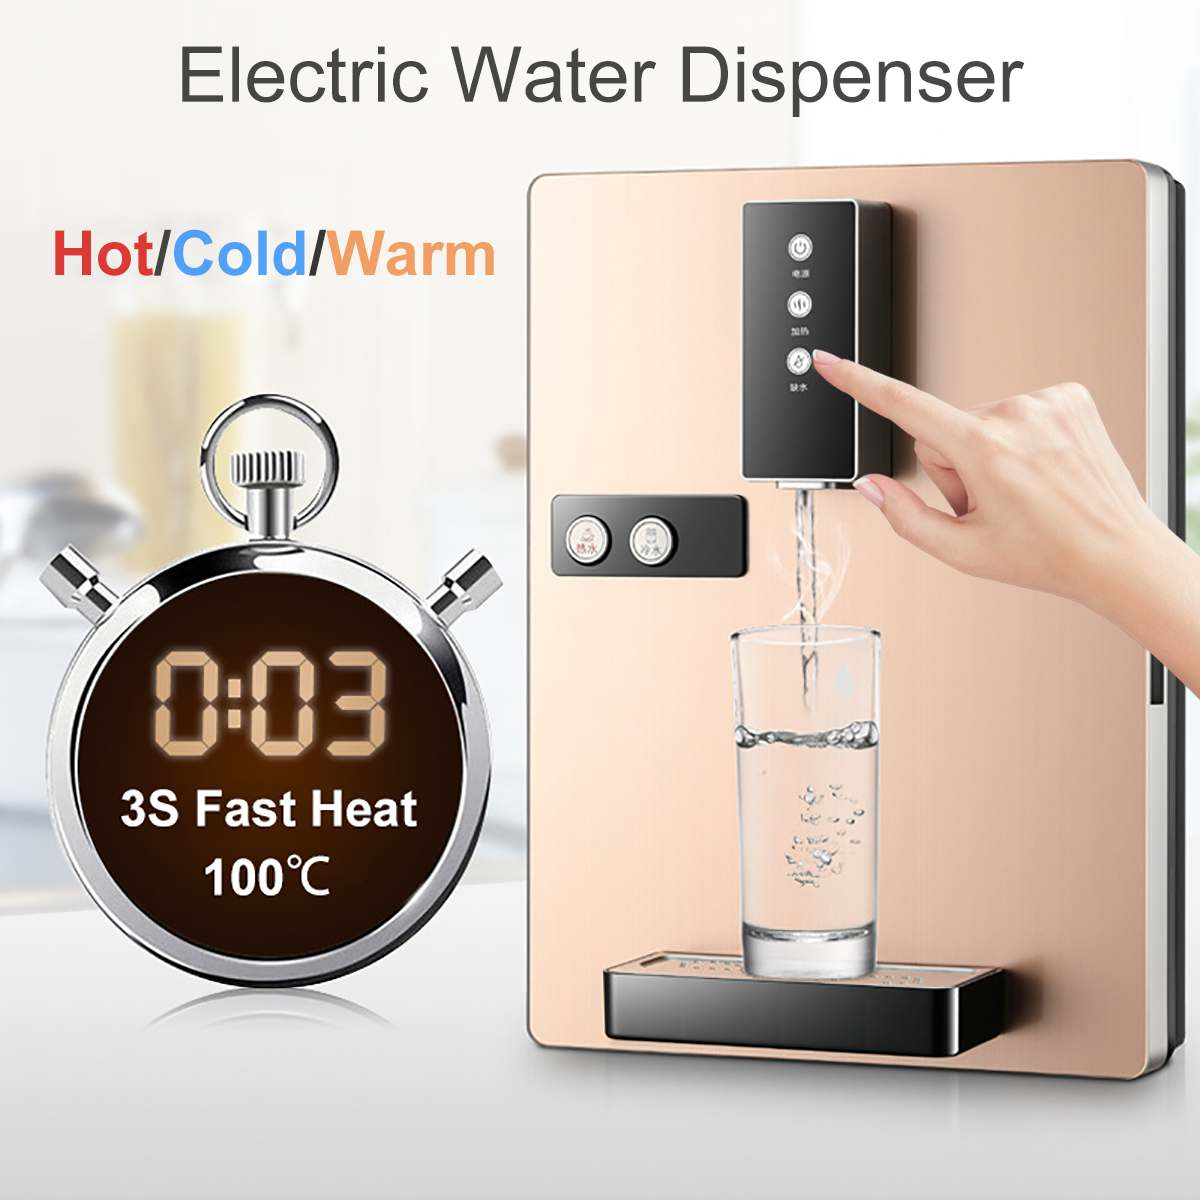 Multifunctional Hot/Cold/Ice Electric Water Dispenser 220V Wall Mounting Water Heater Water Cooler Drinking Fountain